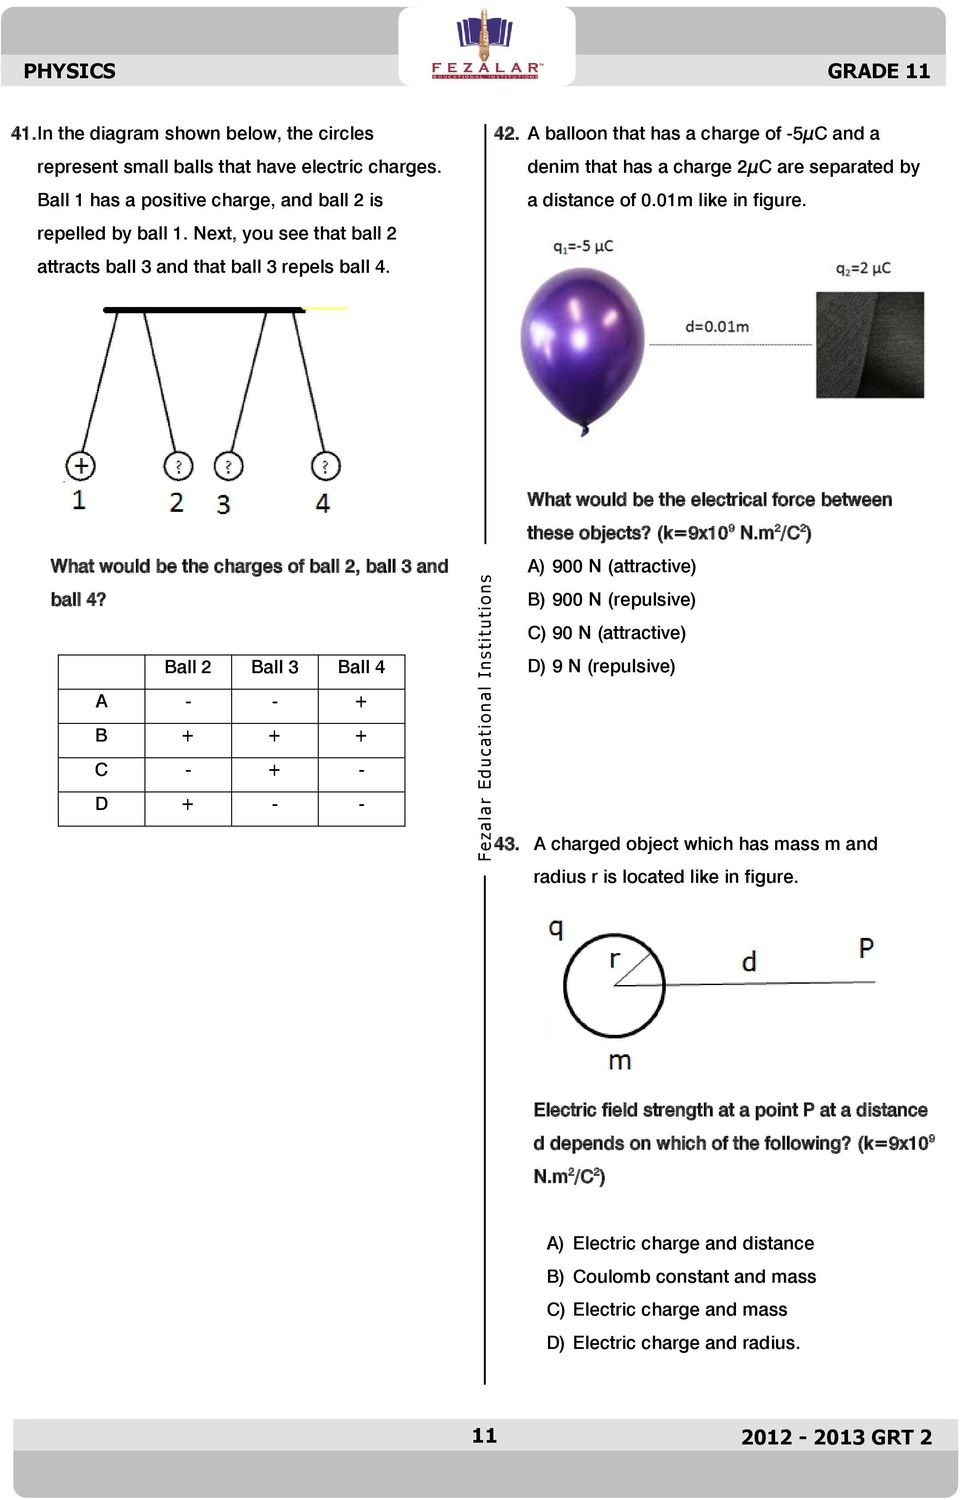 A balloon that has a charge of -5µC and a denim that has a charge 2µC are separated by a distance of 0.01m like in figure. What would be the charges of ball 2, ball 3 and ball 4?